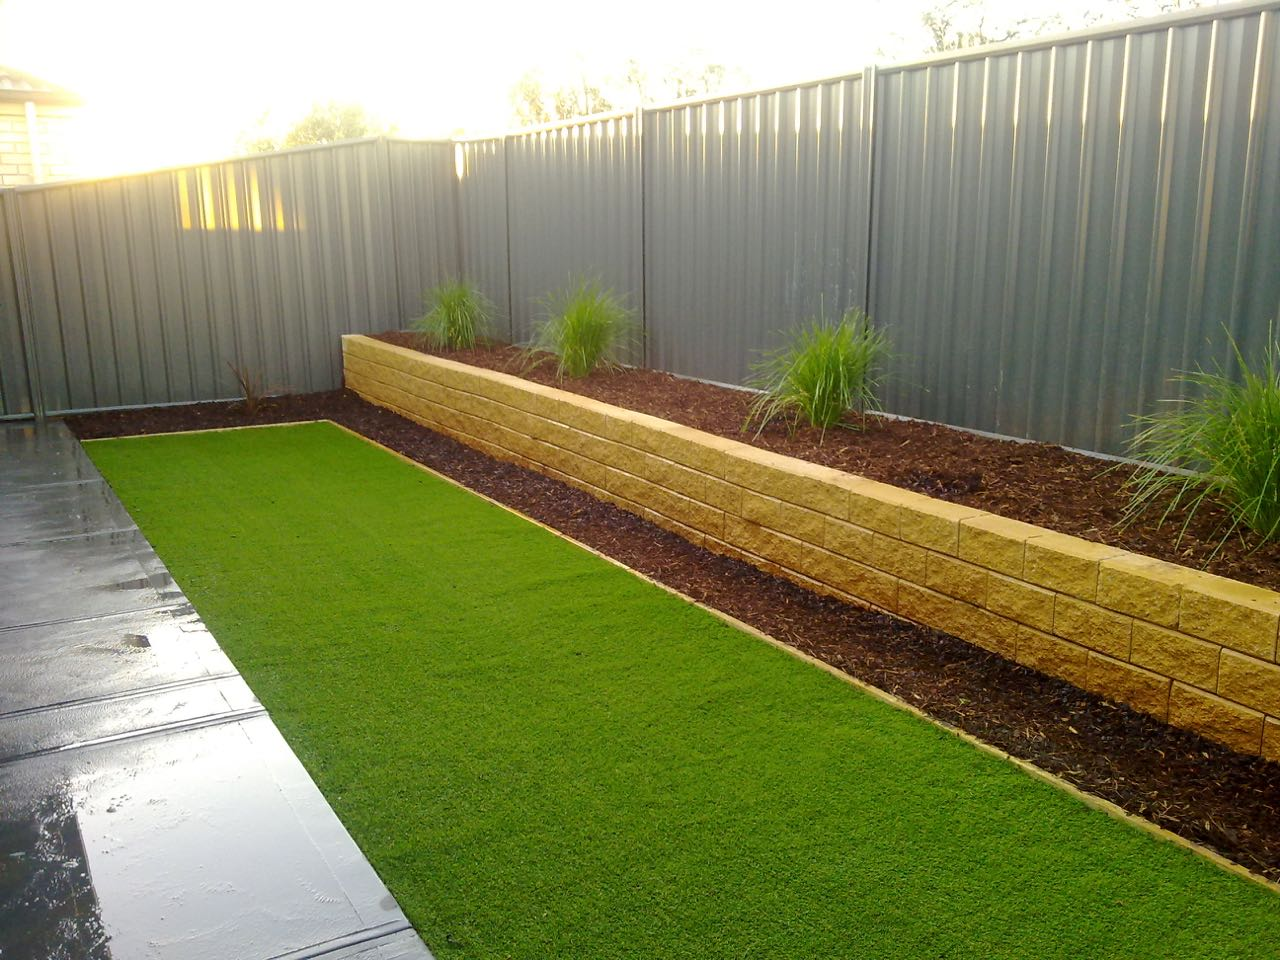 Andrews Farm - Retaining Wall With Garden Bed For Plants